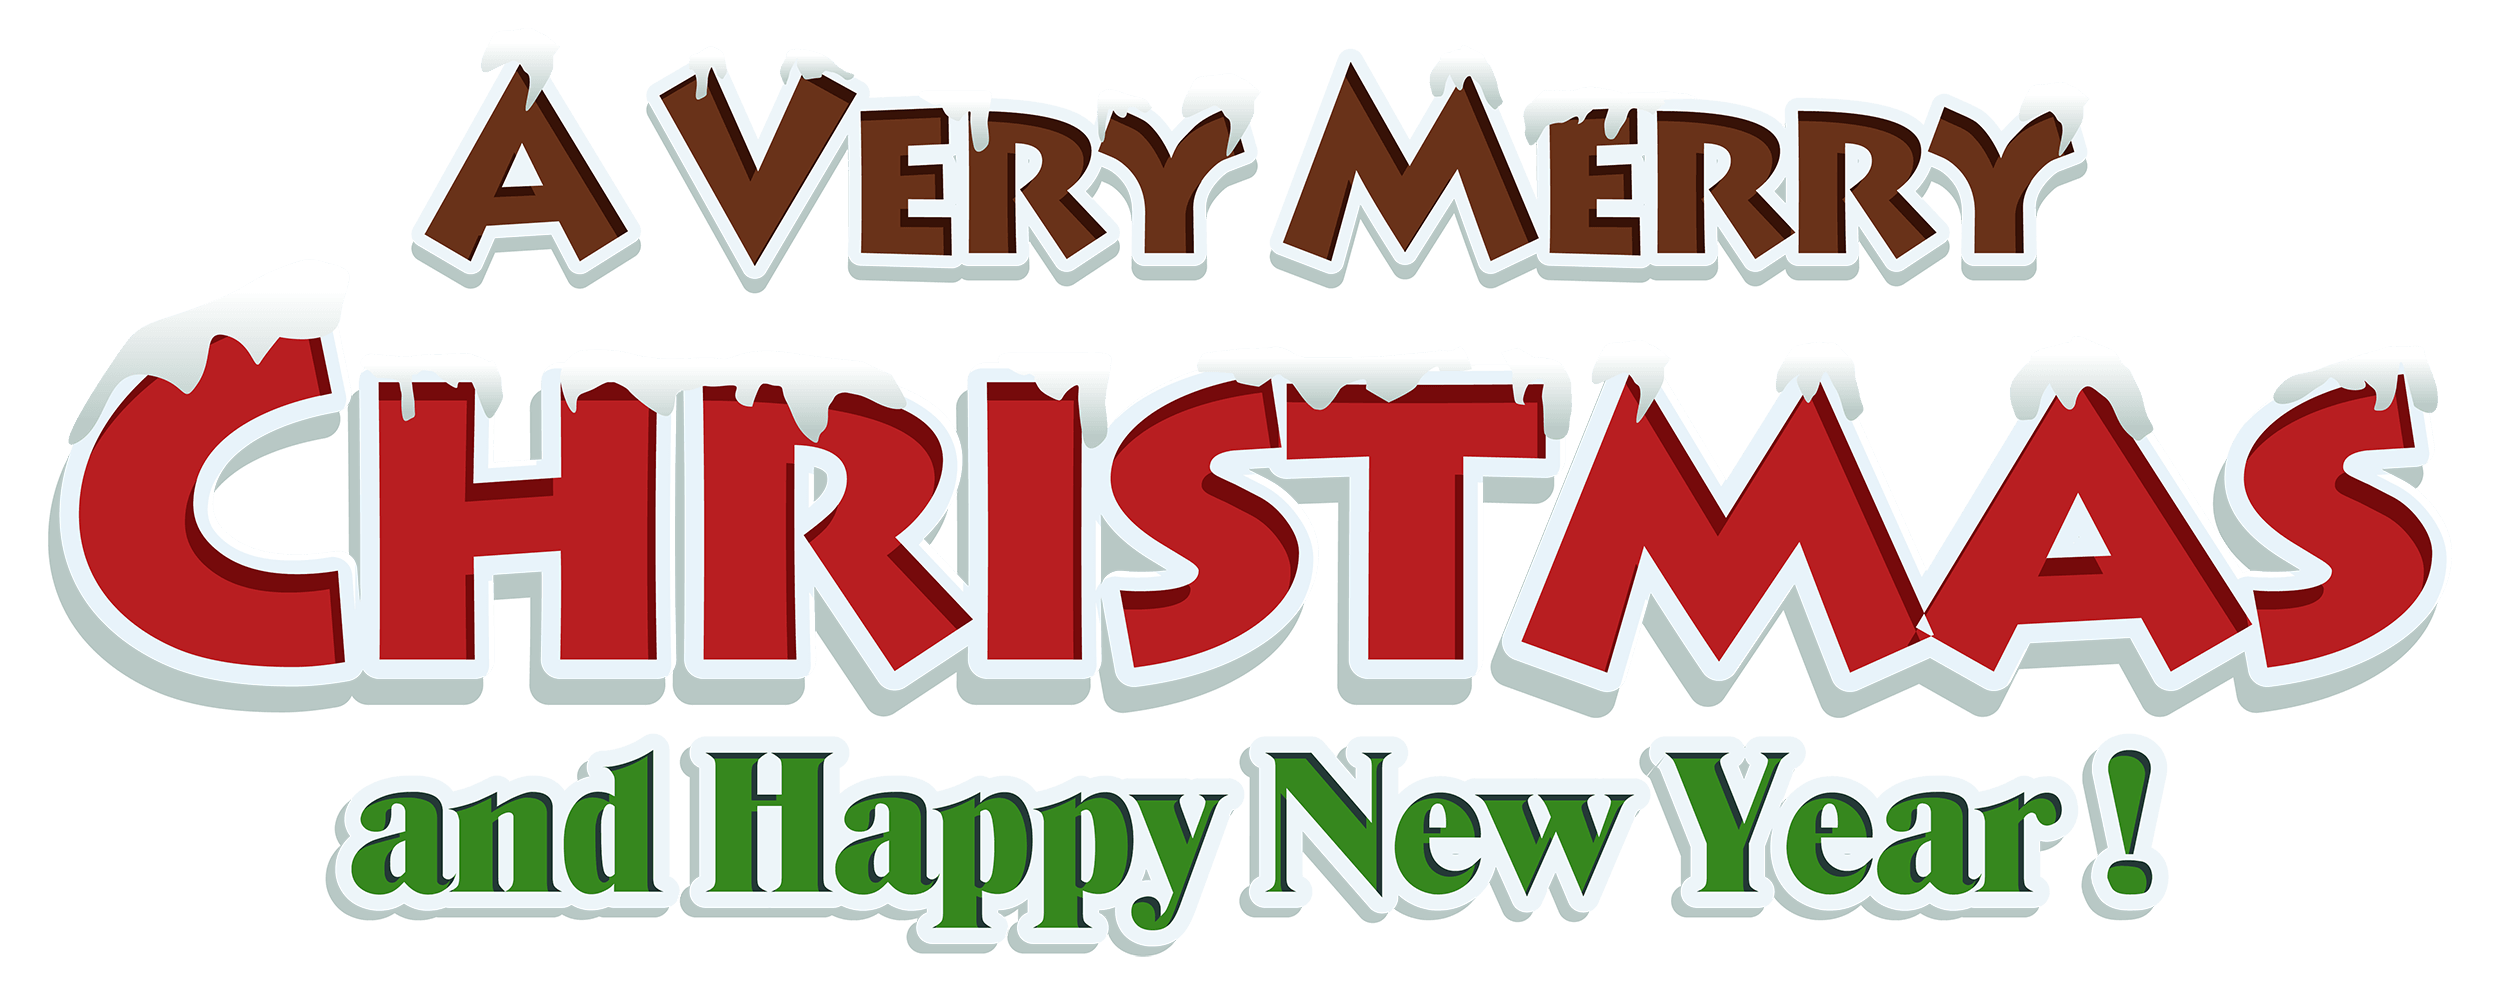 Free merry christmas clipart svg freeuse download Merry Christmas And Happy New Year Clipart Group (58+) svg freeuse download